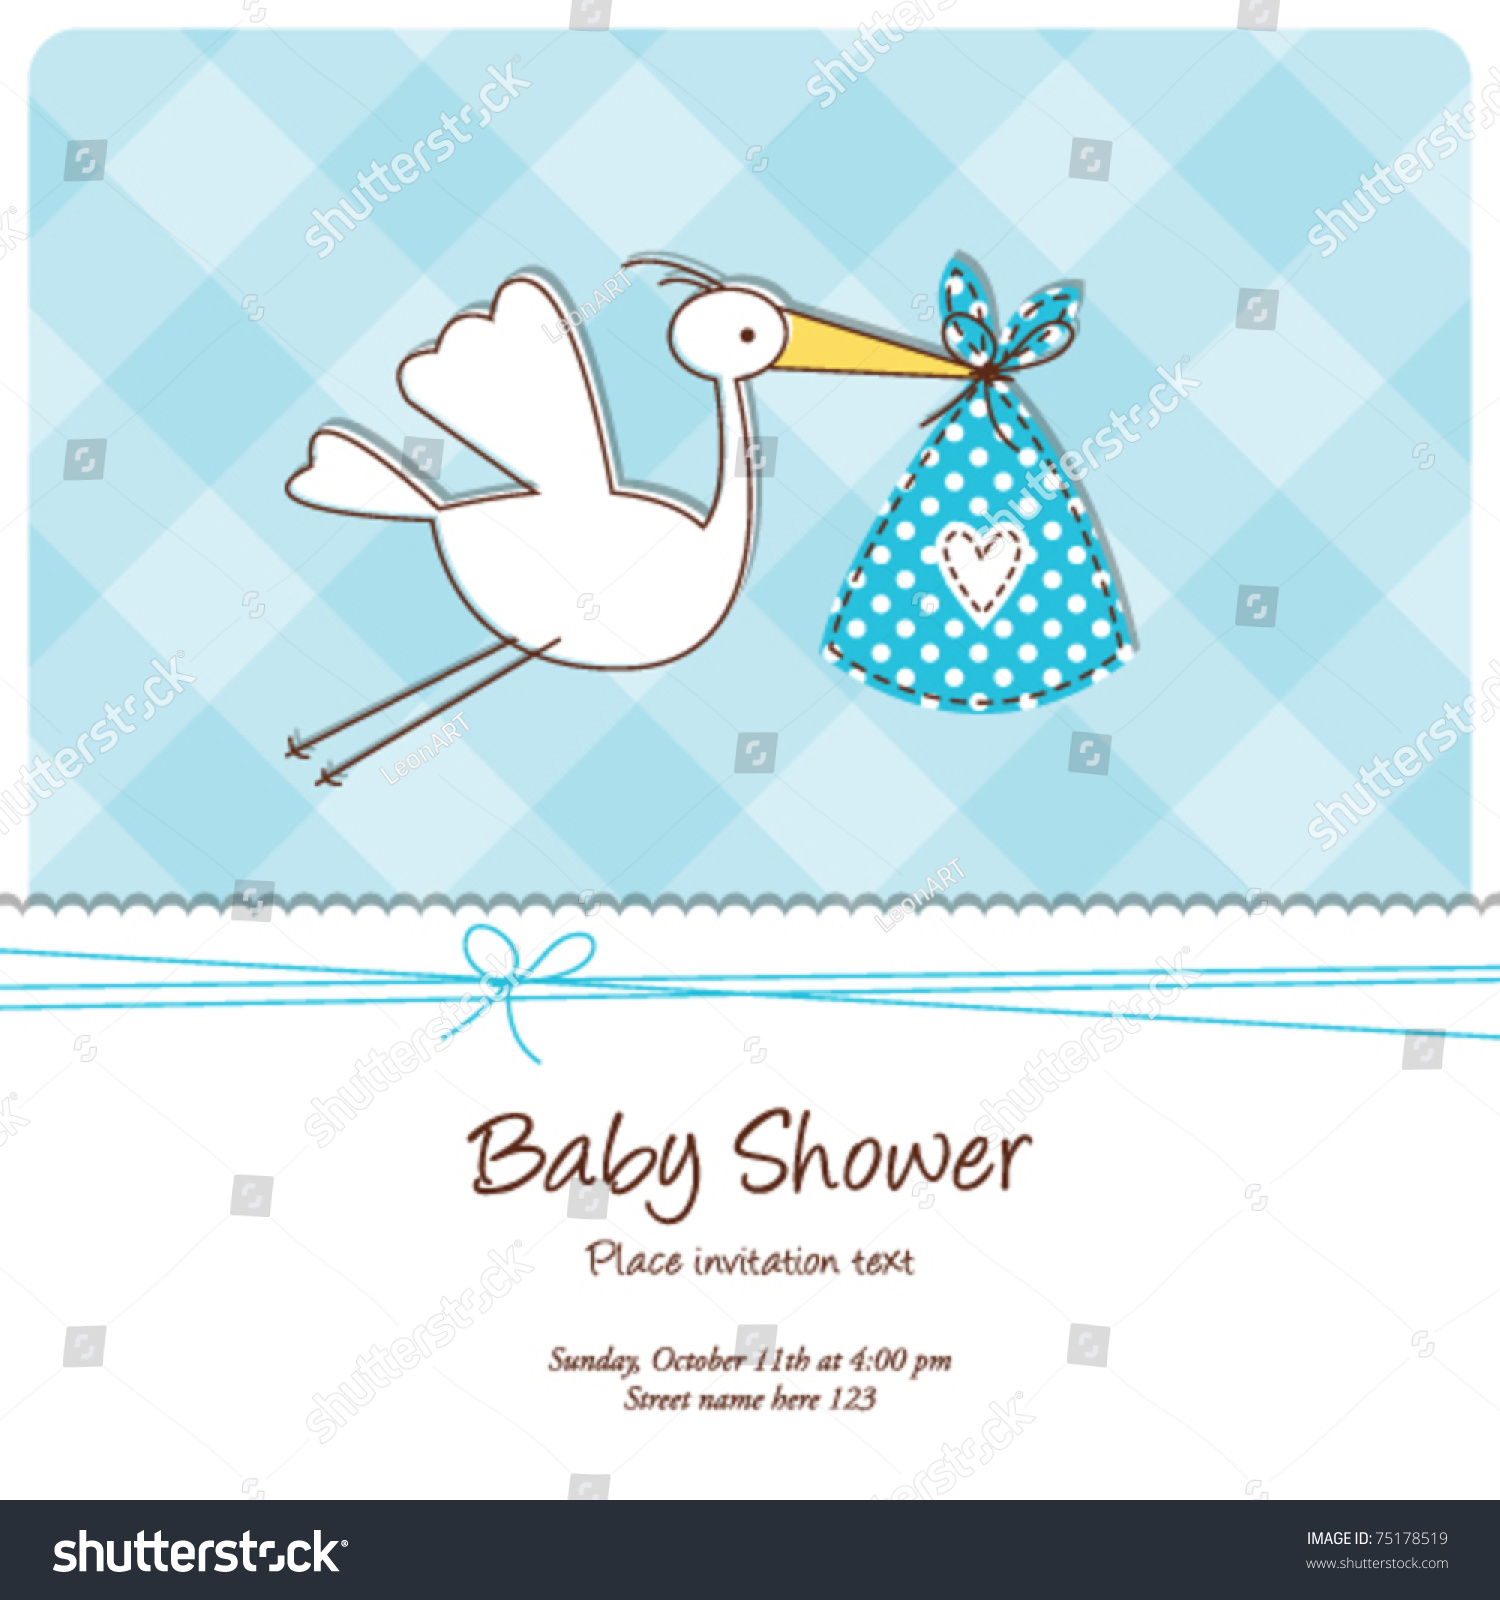 Baby Shower Invitation Template Cute Baby Stock Vector